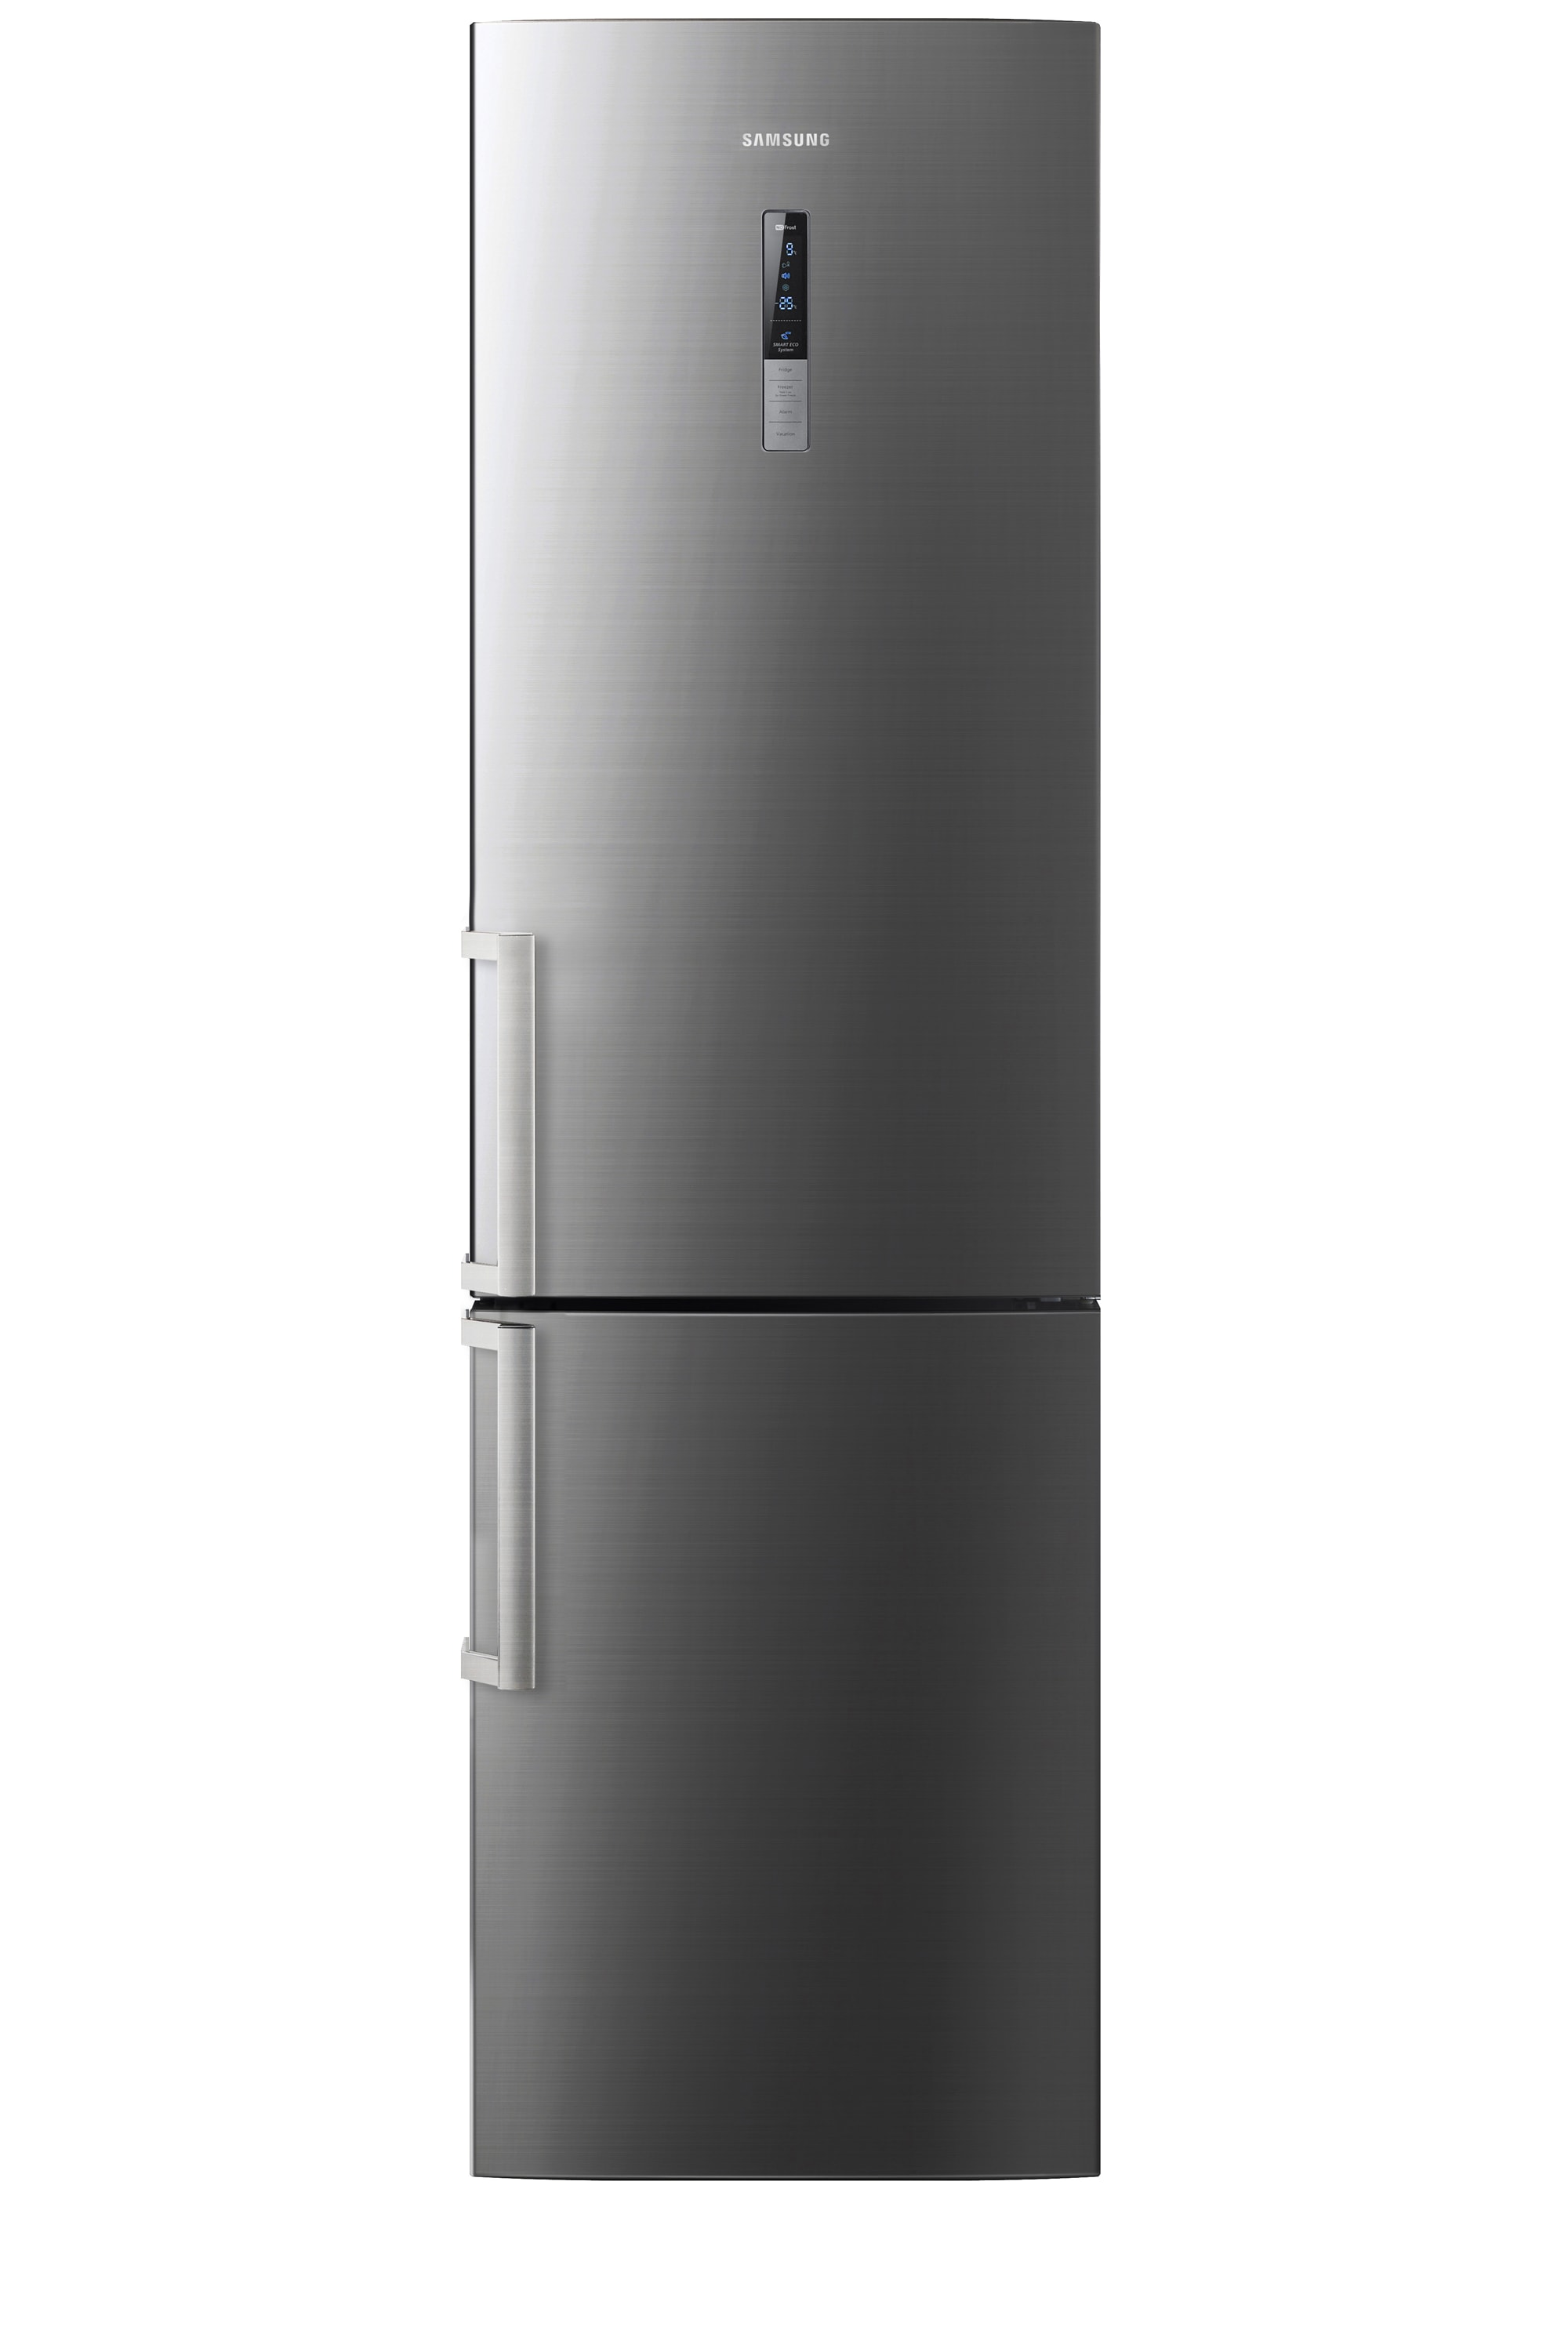 RL60GZEIH G-Series 2.1m Fridge Freezer